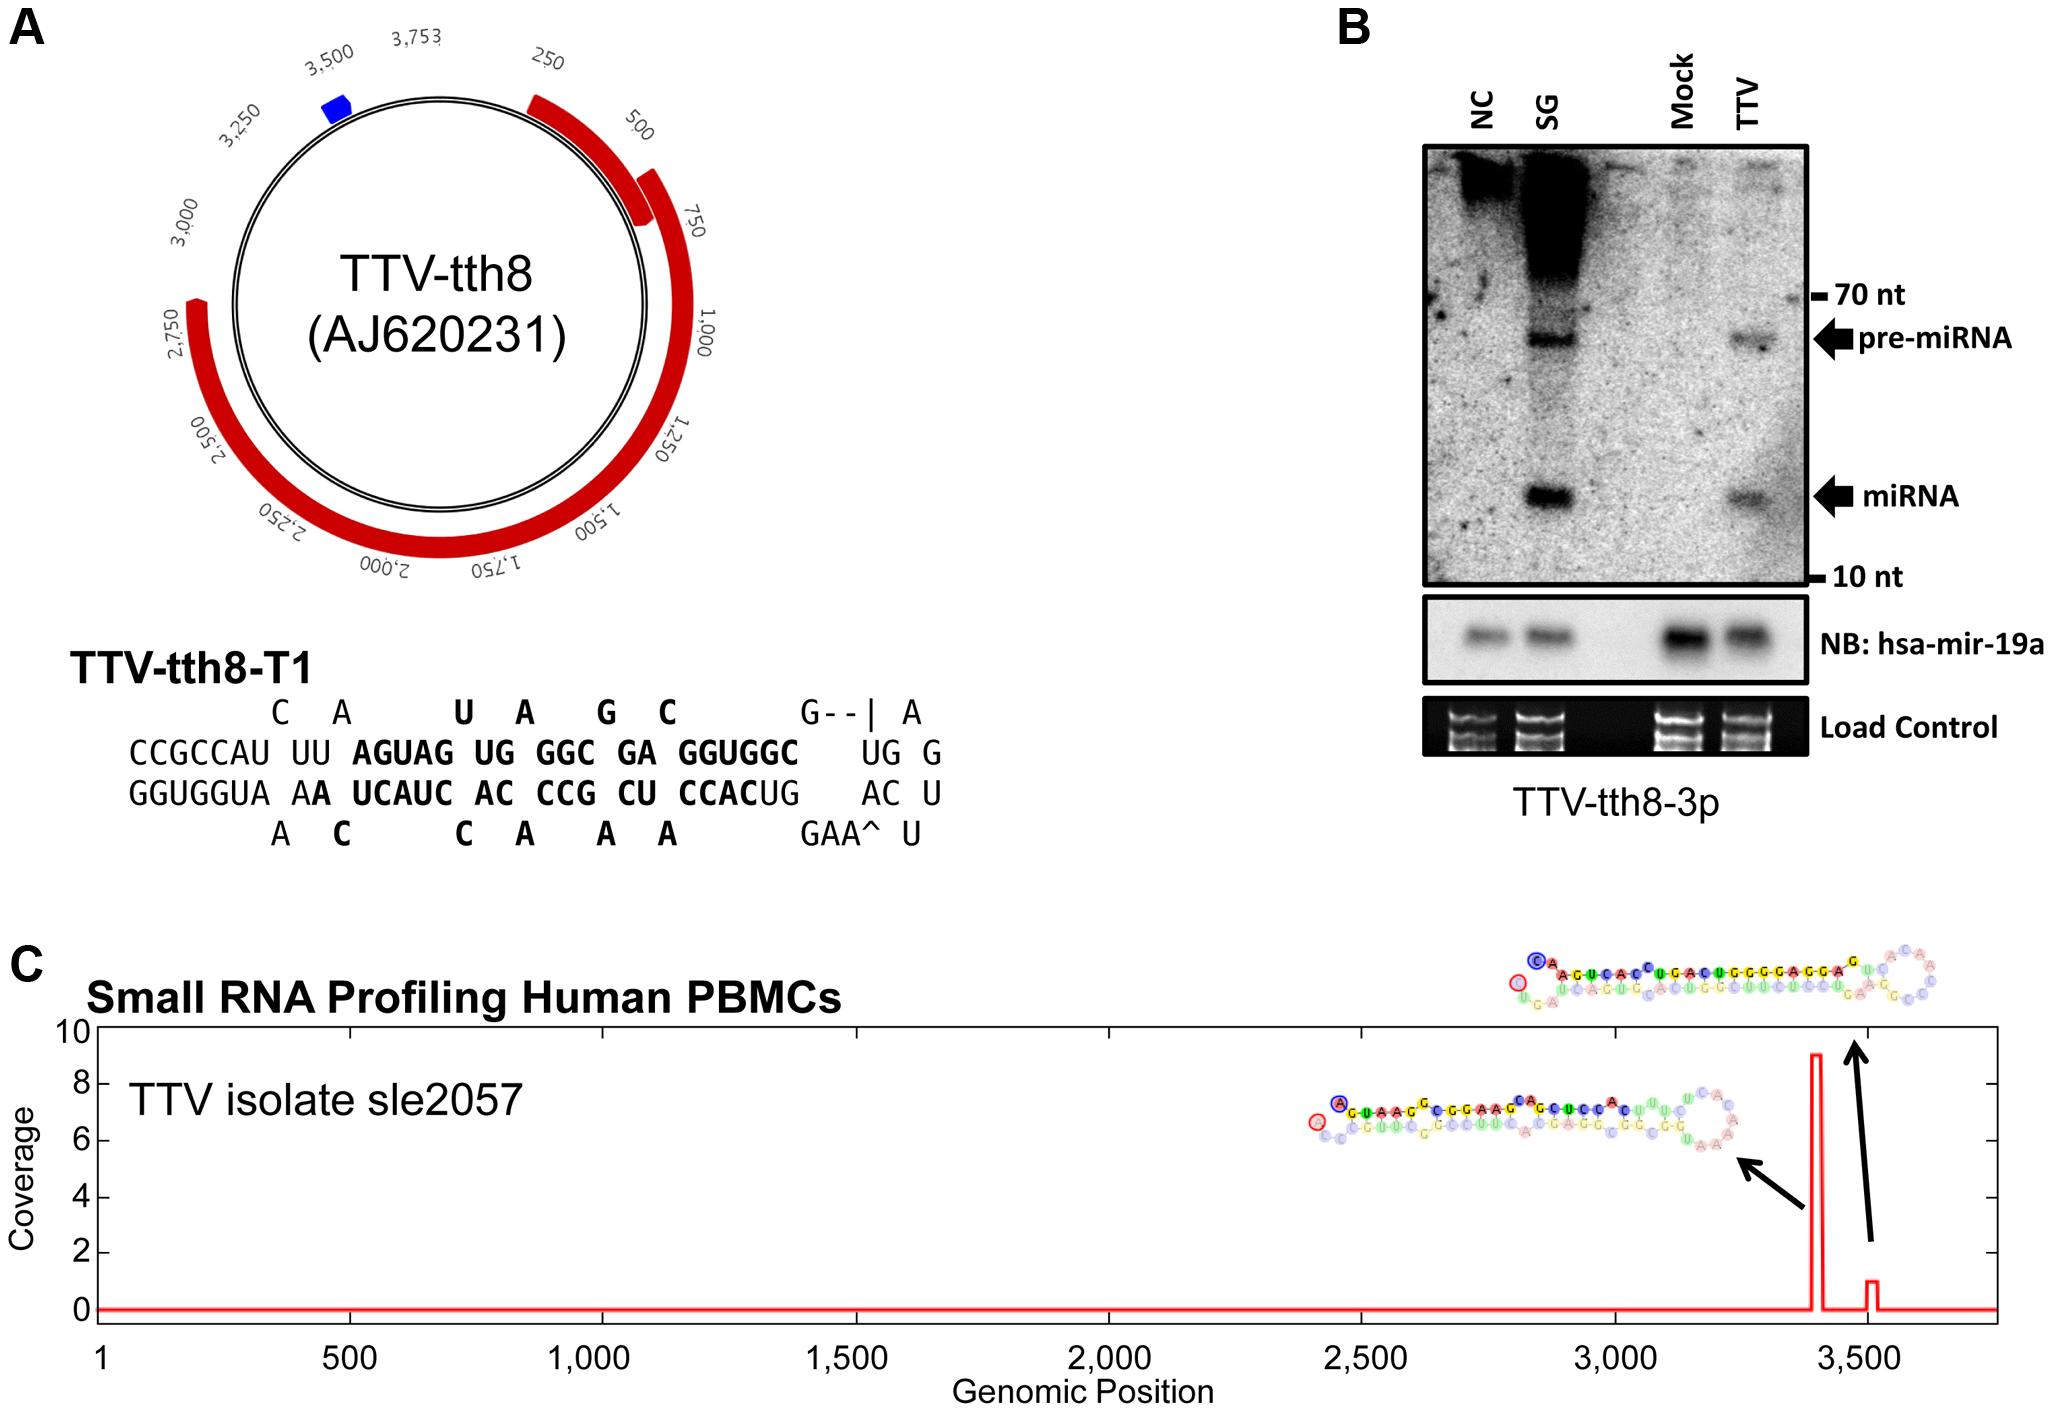 TTV miRNAs are expressed during <i>in vitro</i> cell culture replication and are detectable from <i>in vivo</i> small RNA profiling of human PBMCs.